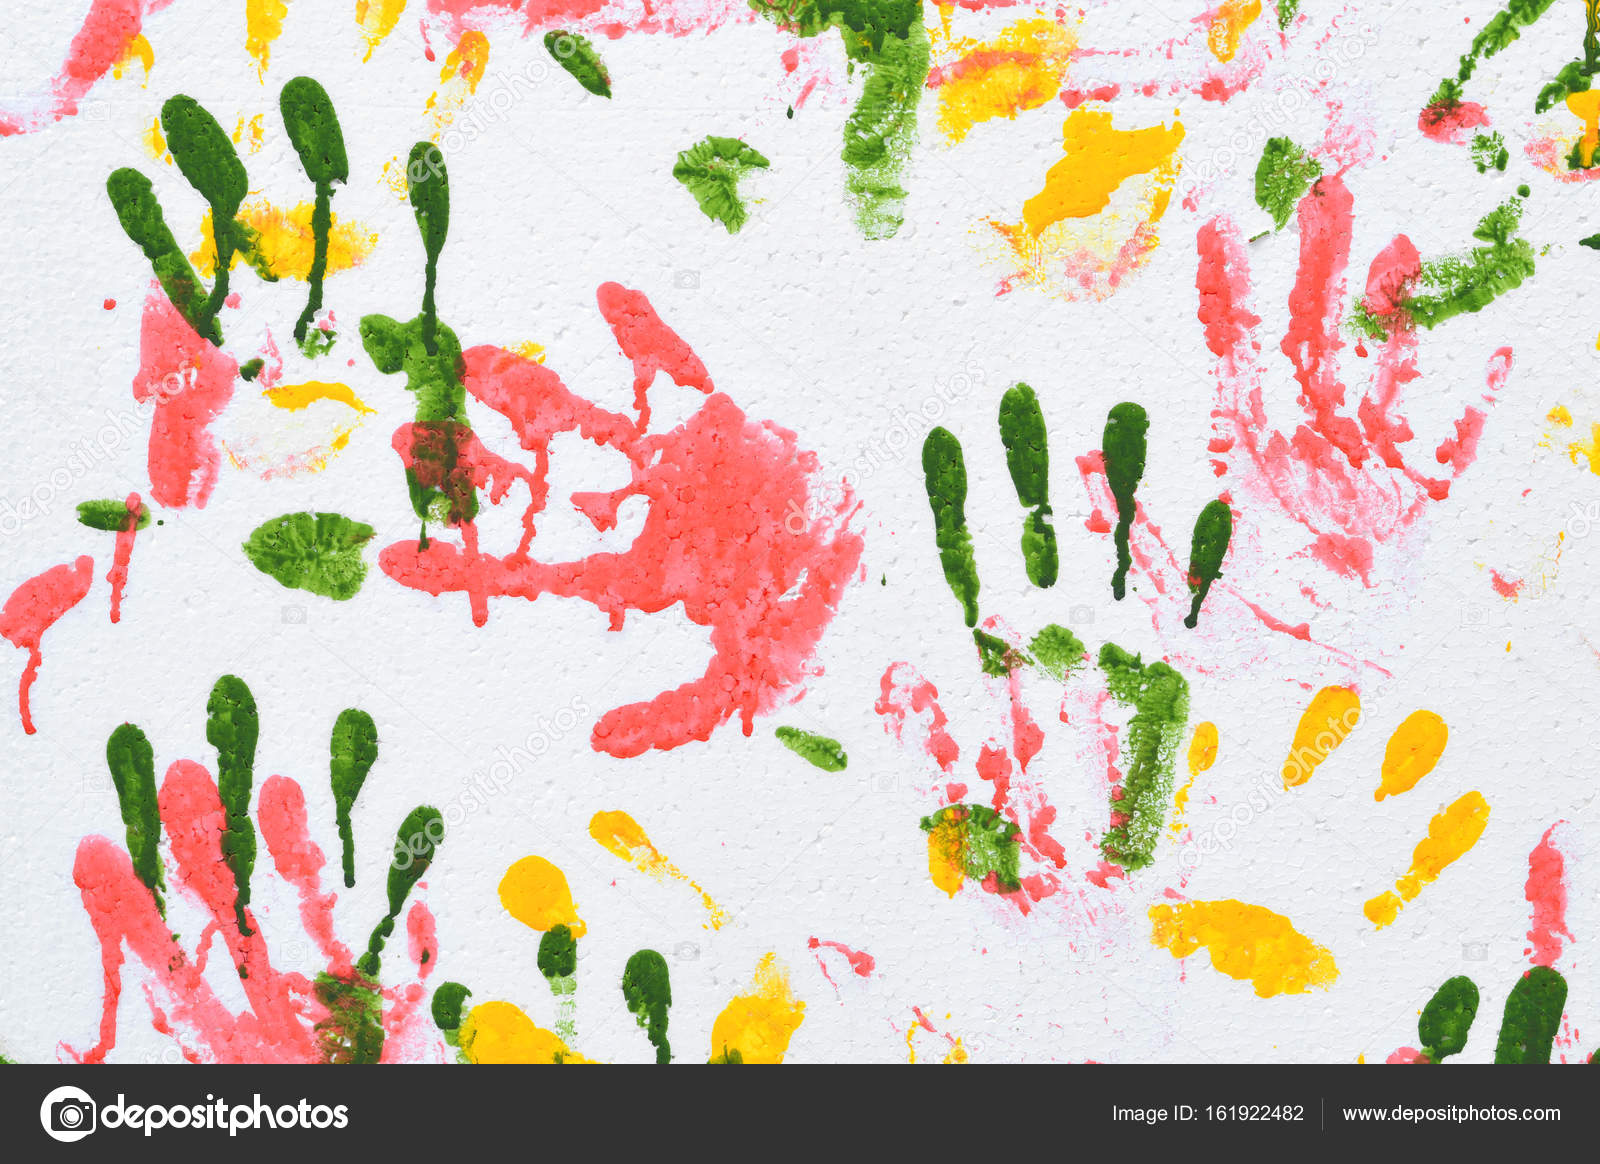 Background Handprint Colorful Handprint Background